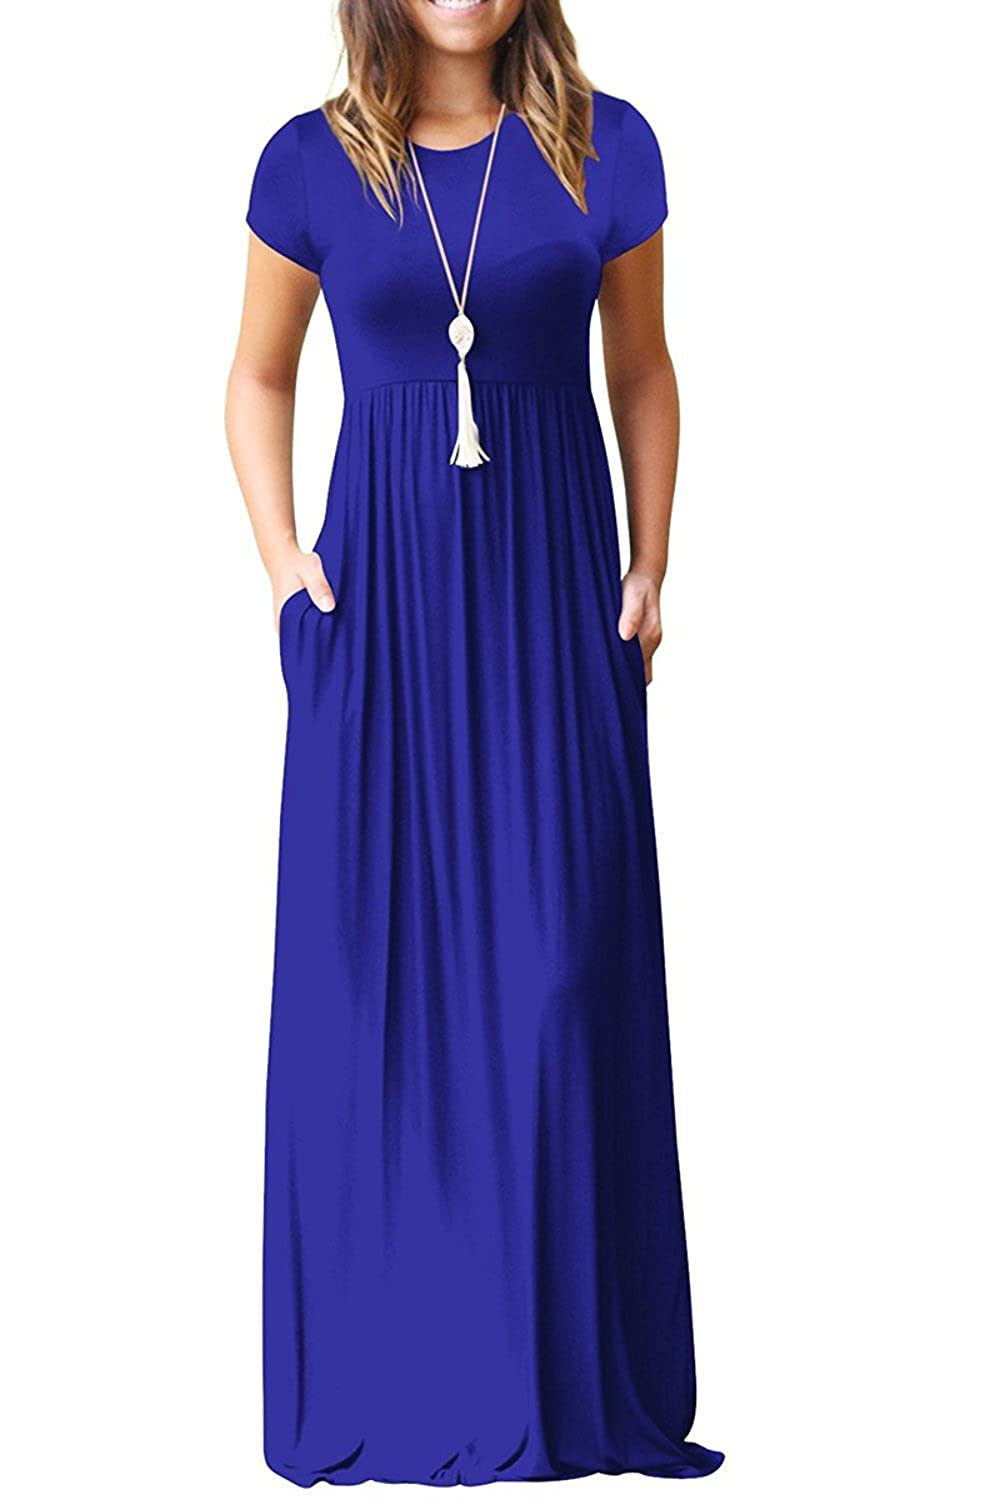 00 Royal bluee Short Sleeves HIYIYEZI Women's Short Sleeve Loose Plain Maxi Dresses Casual Long Dresses with Pockets